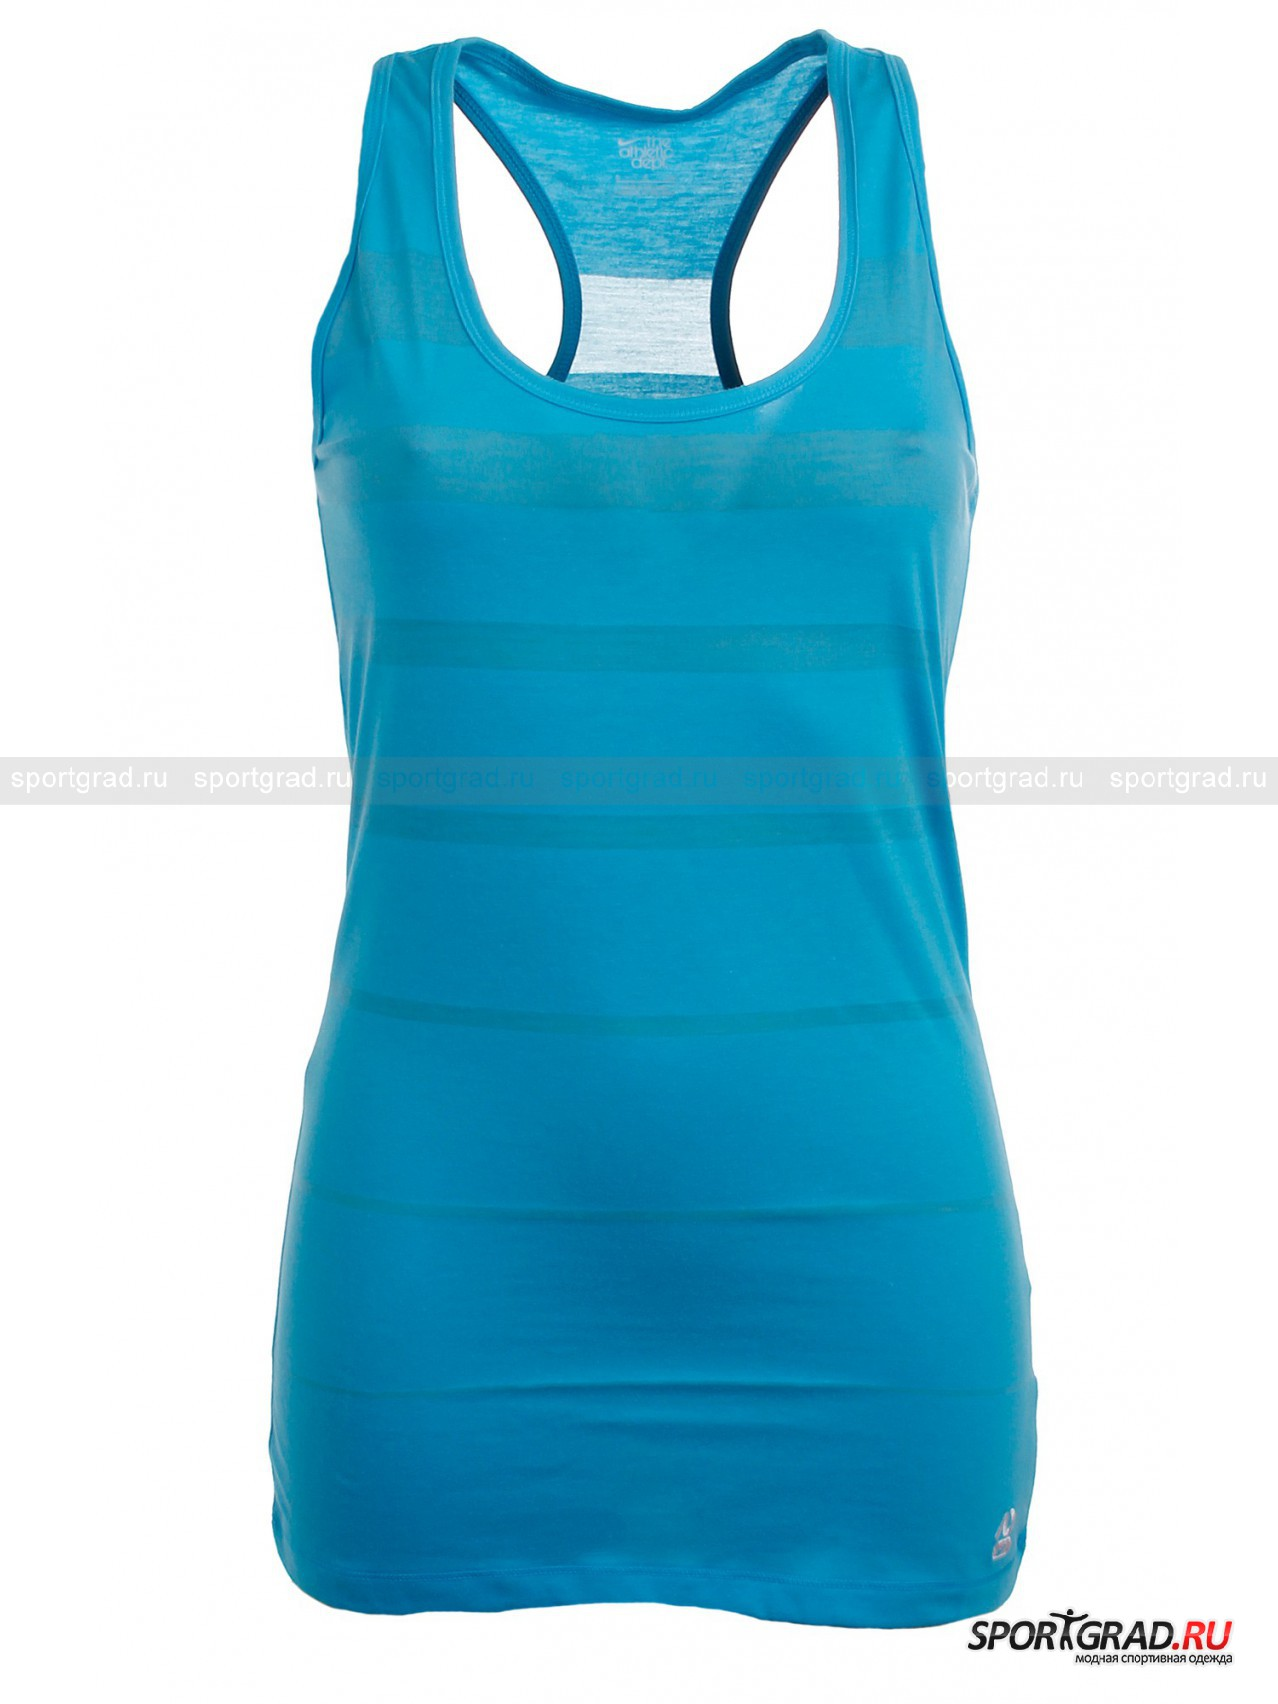 Топ жен VARIGATED BURNOUT TANK NIKE